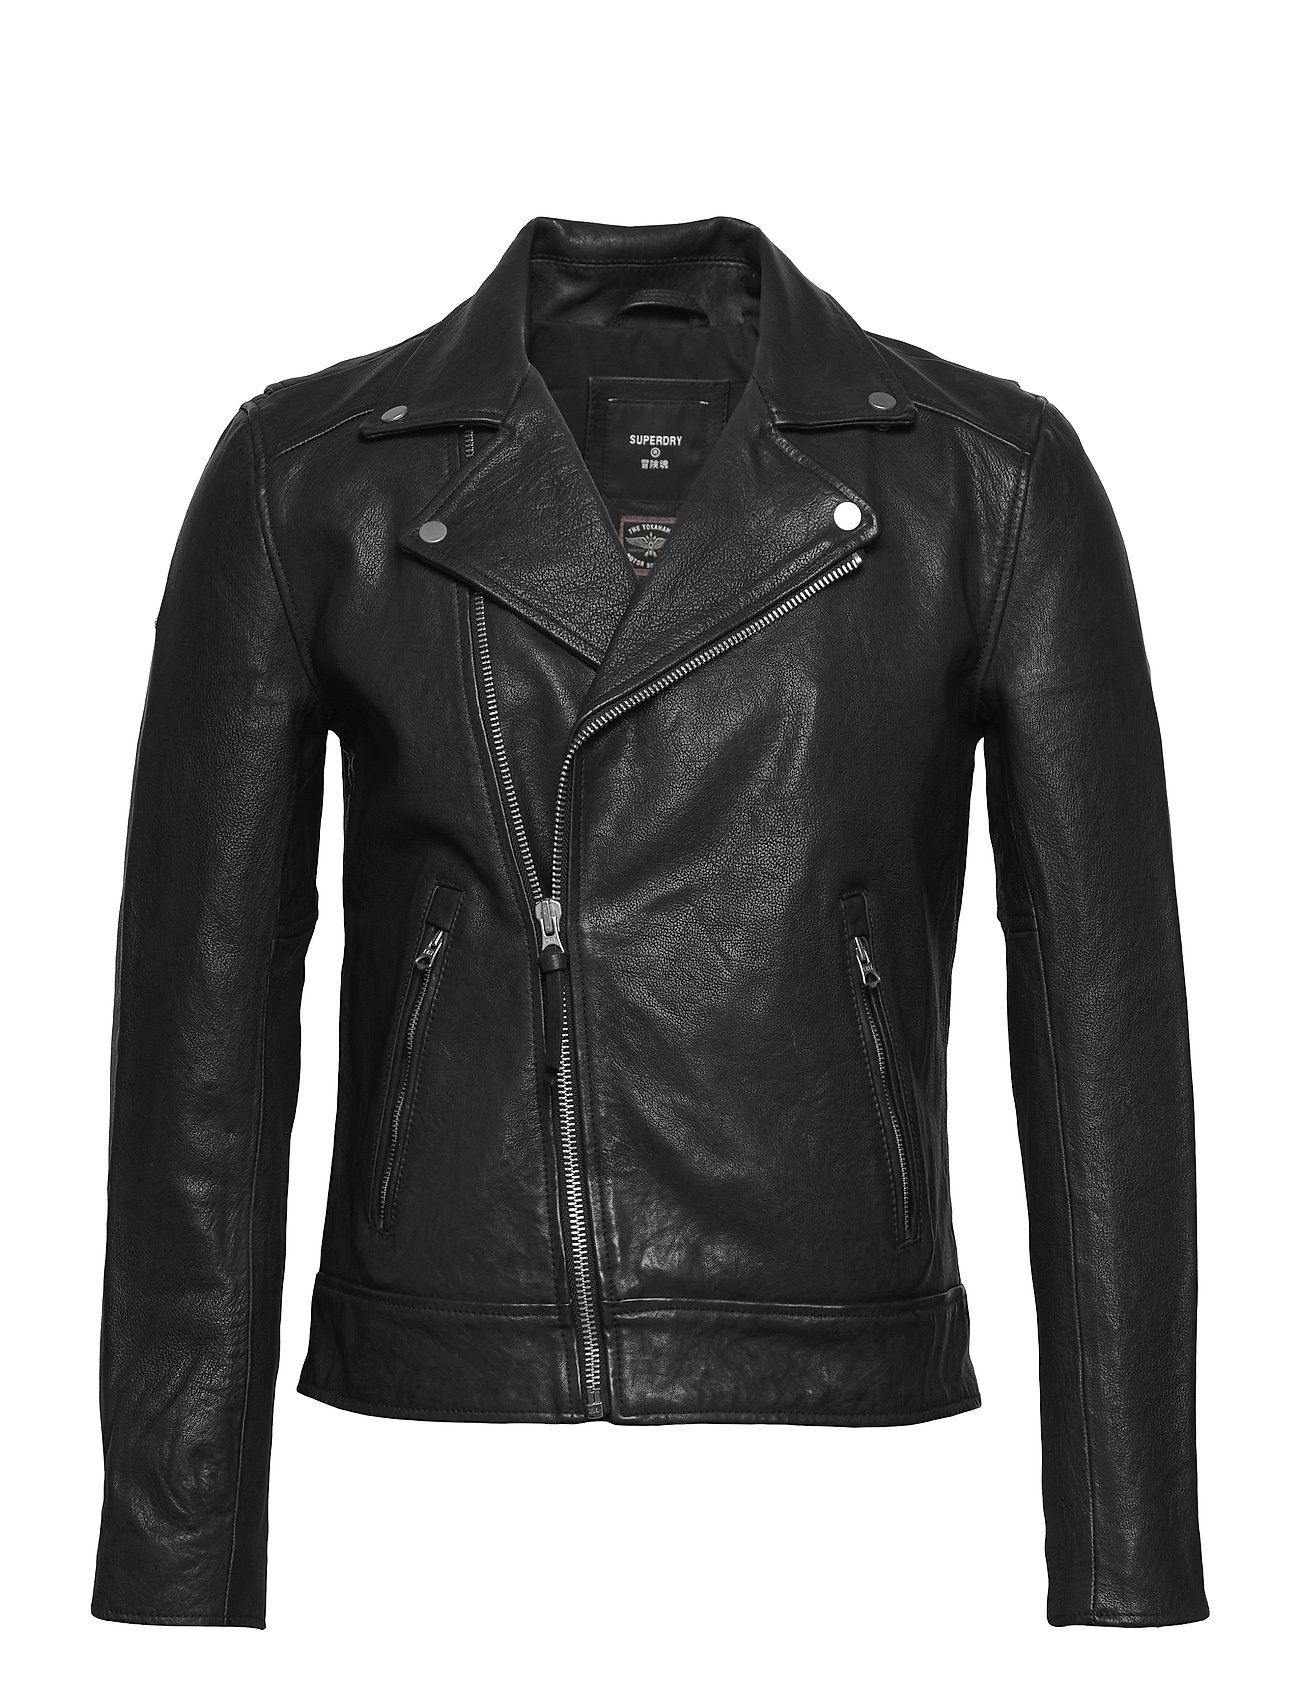 Image of Leather Moto Biker Læderjakke Skindjakke Sort Superdry (3504750361)